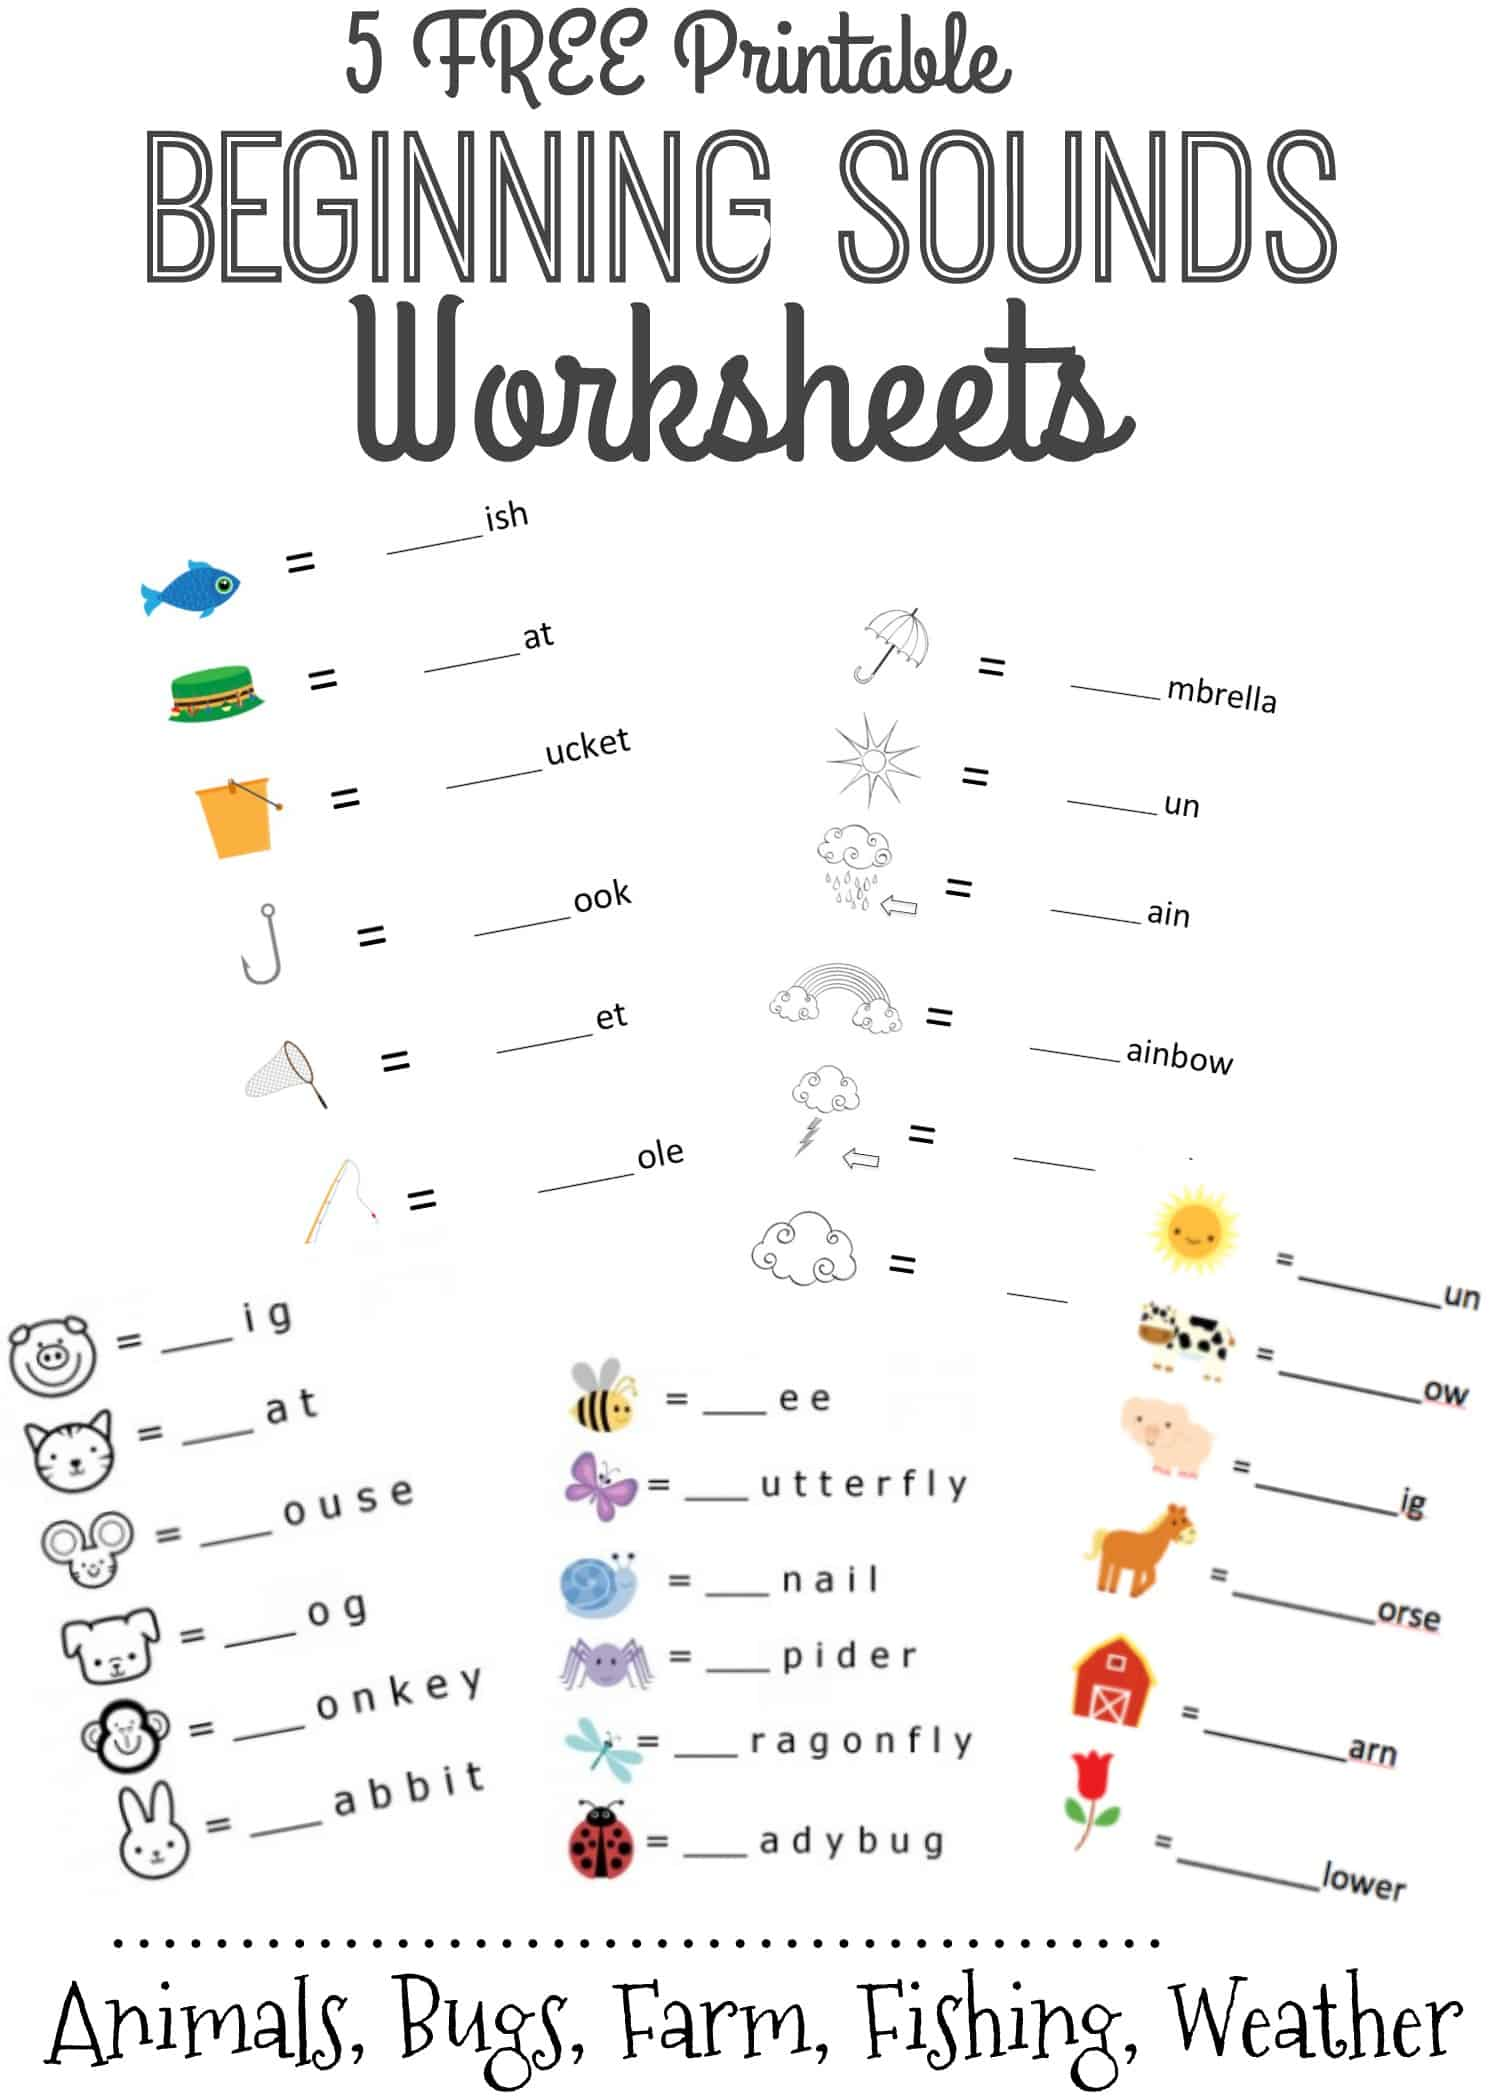 Beginning Sounds Letter Worksheets For Early Learners